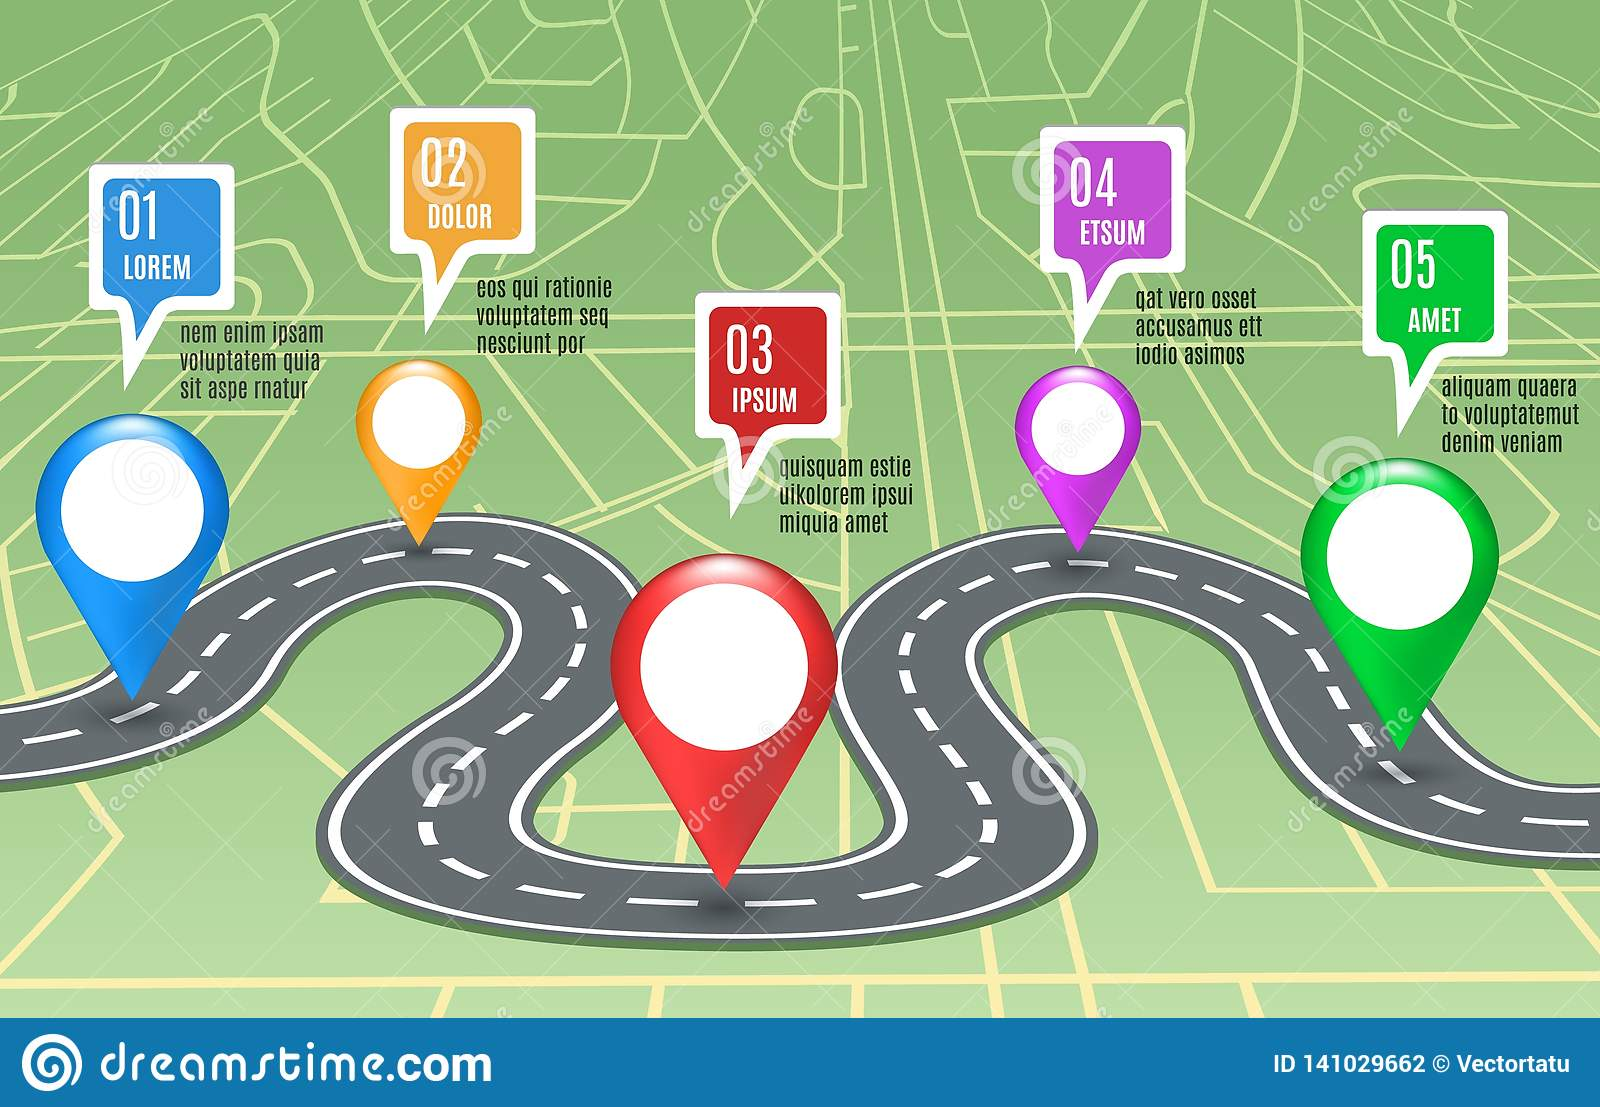 Road map concept stock vector. Illustration of connection ...